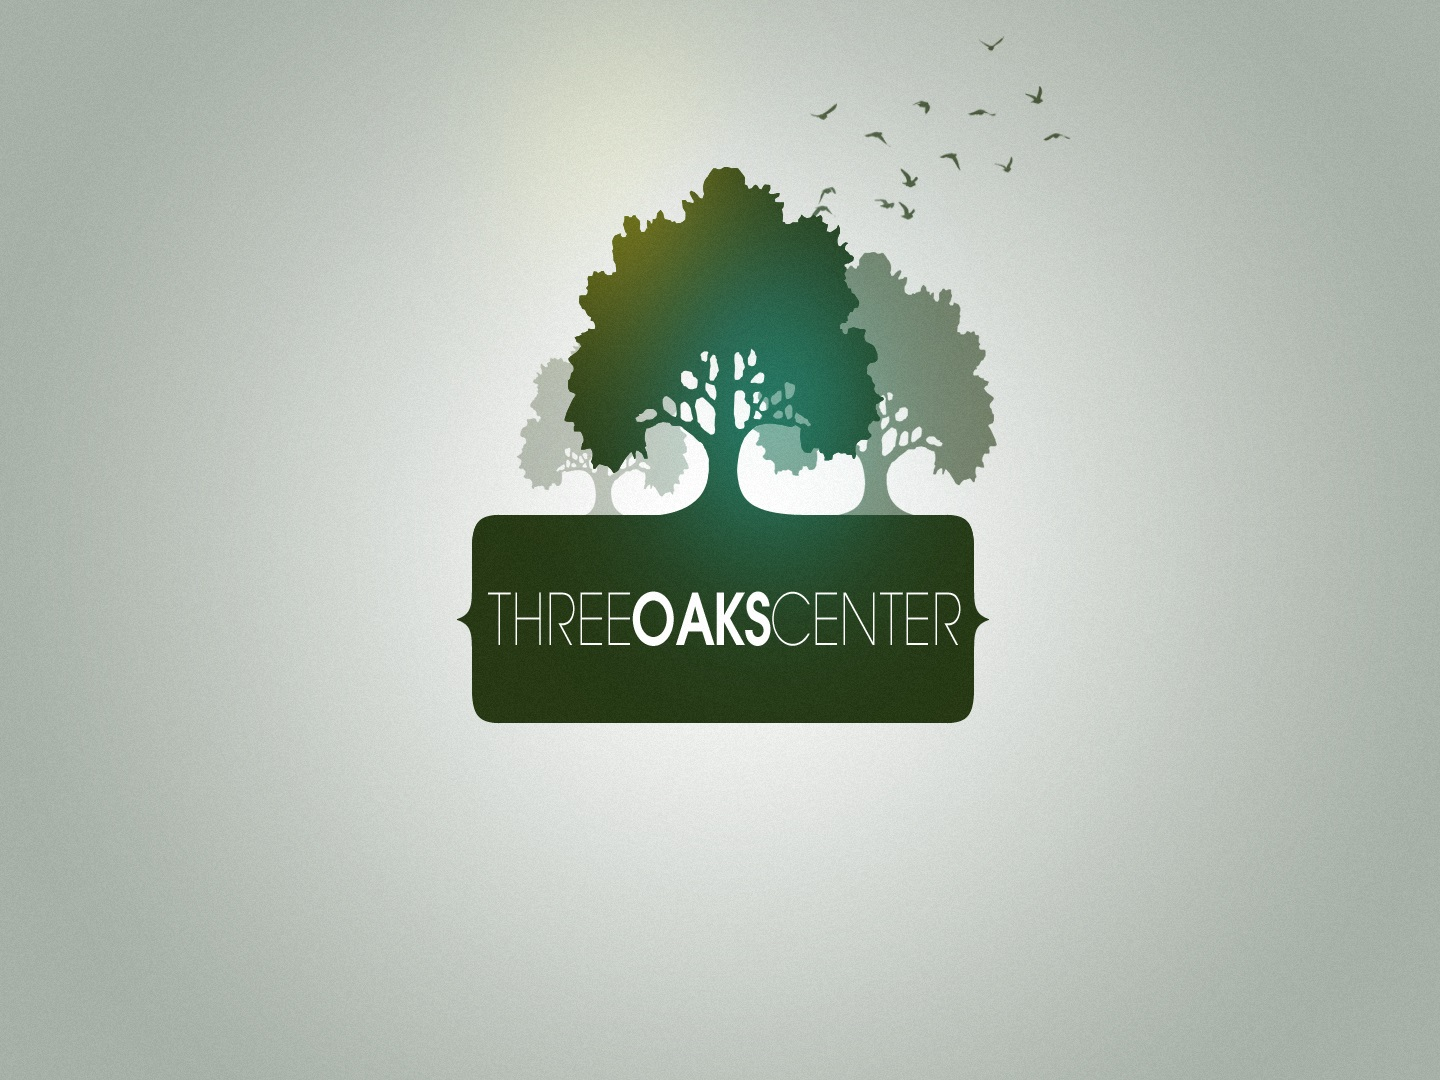 Three Oaks Center